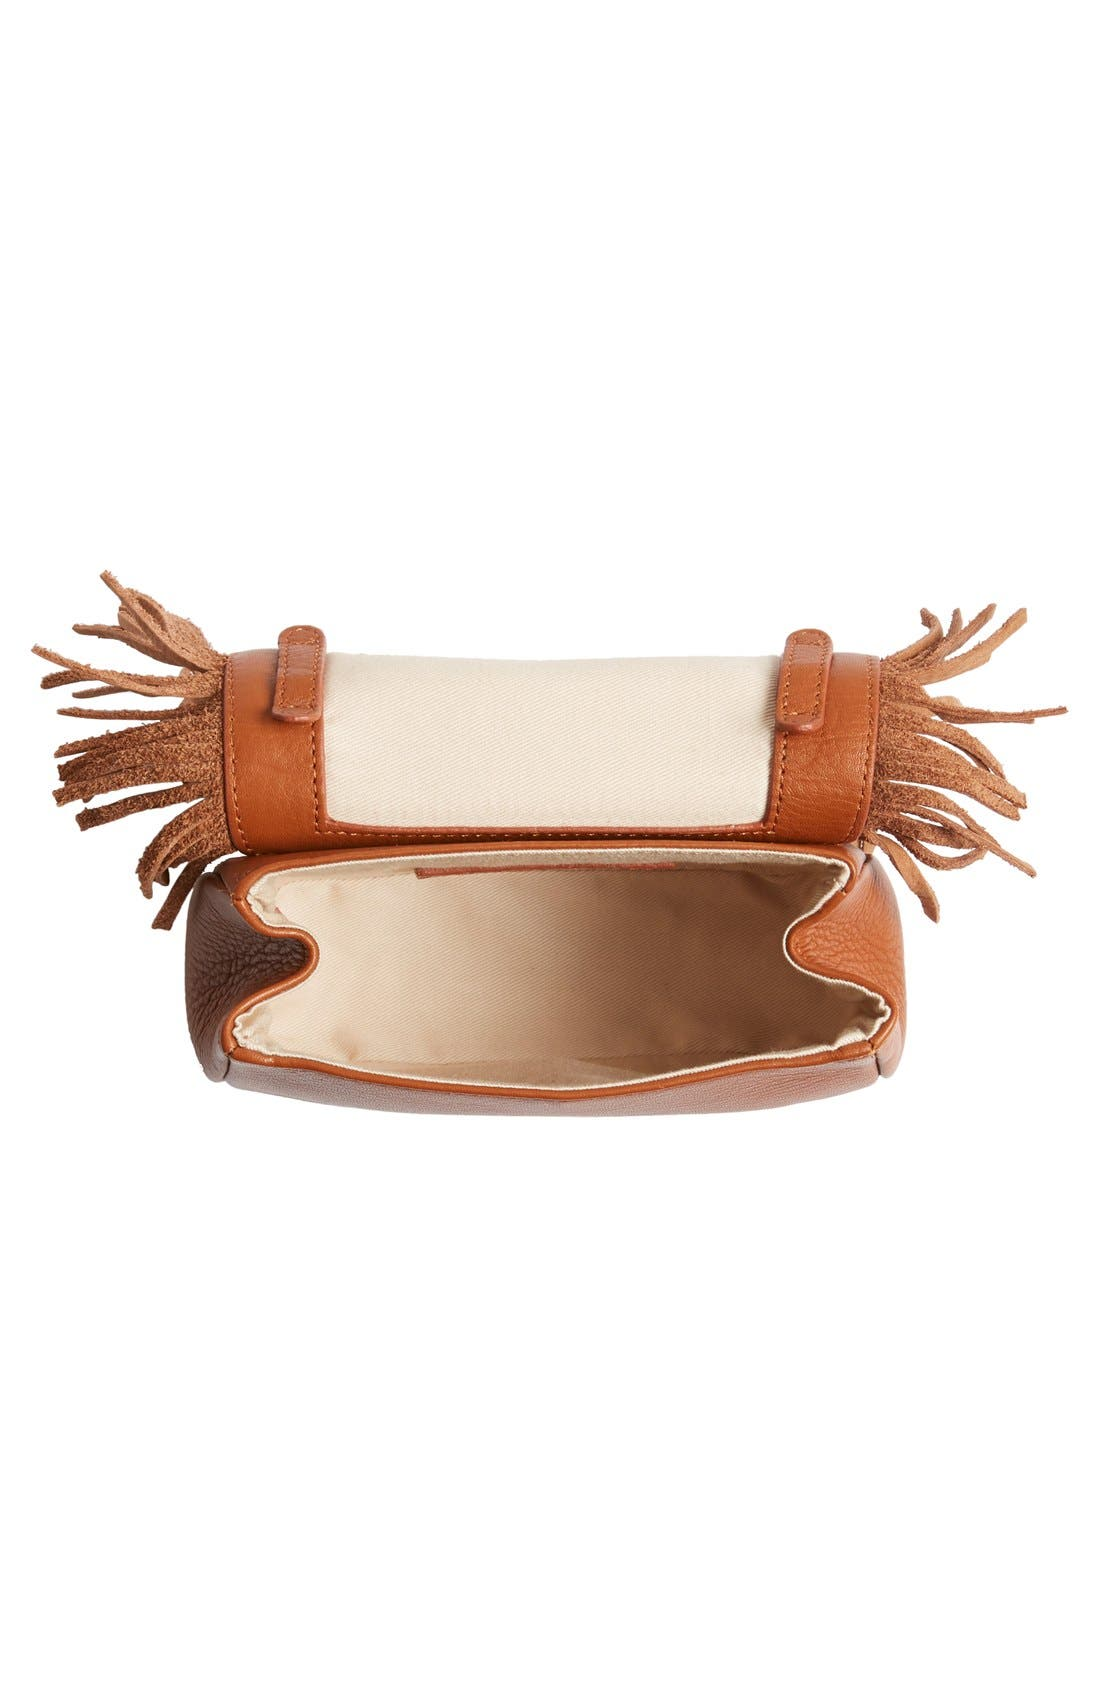 Alternate Image 4  - See by Chloé 'Medium Paige' Fringe Leather & Suede Clutch